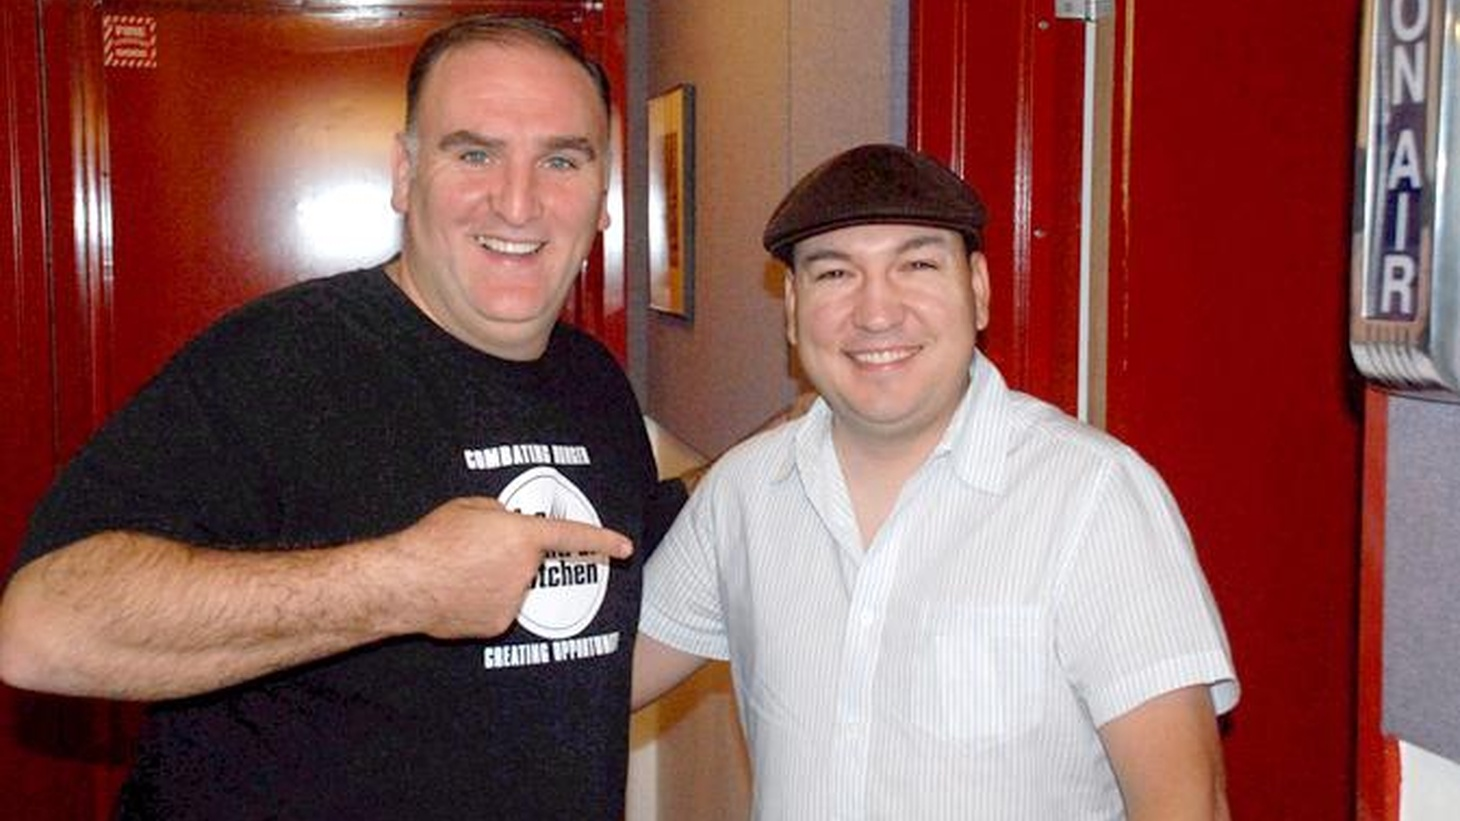 """Spanish Chef José Andrés has an exuberant personality that is on full display as he shares songs he loves and his passion for his homeland. Andrés calls music a """"great companion"""" and named the song that captures his """"internal rhythm"""" as well as two tracks that celebrate different heritages coming together, as he does in his food."""